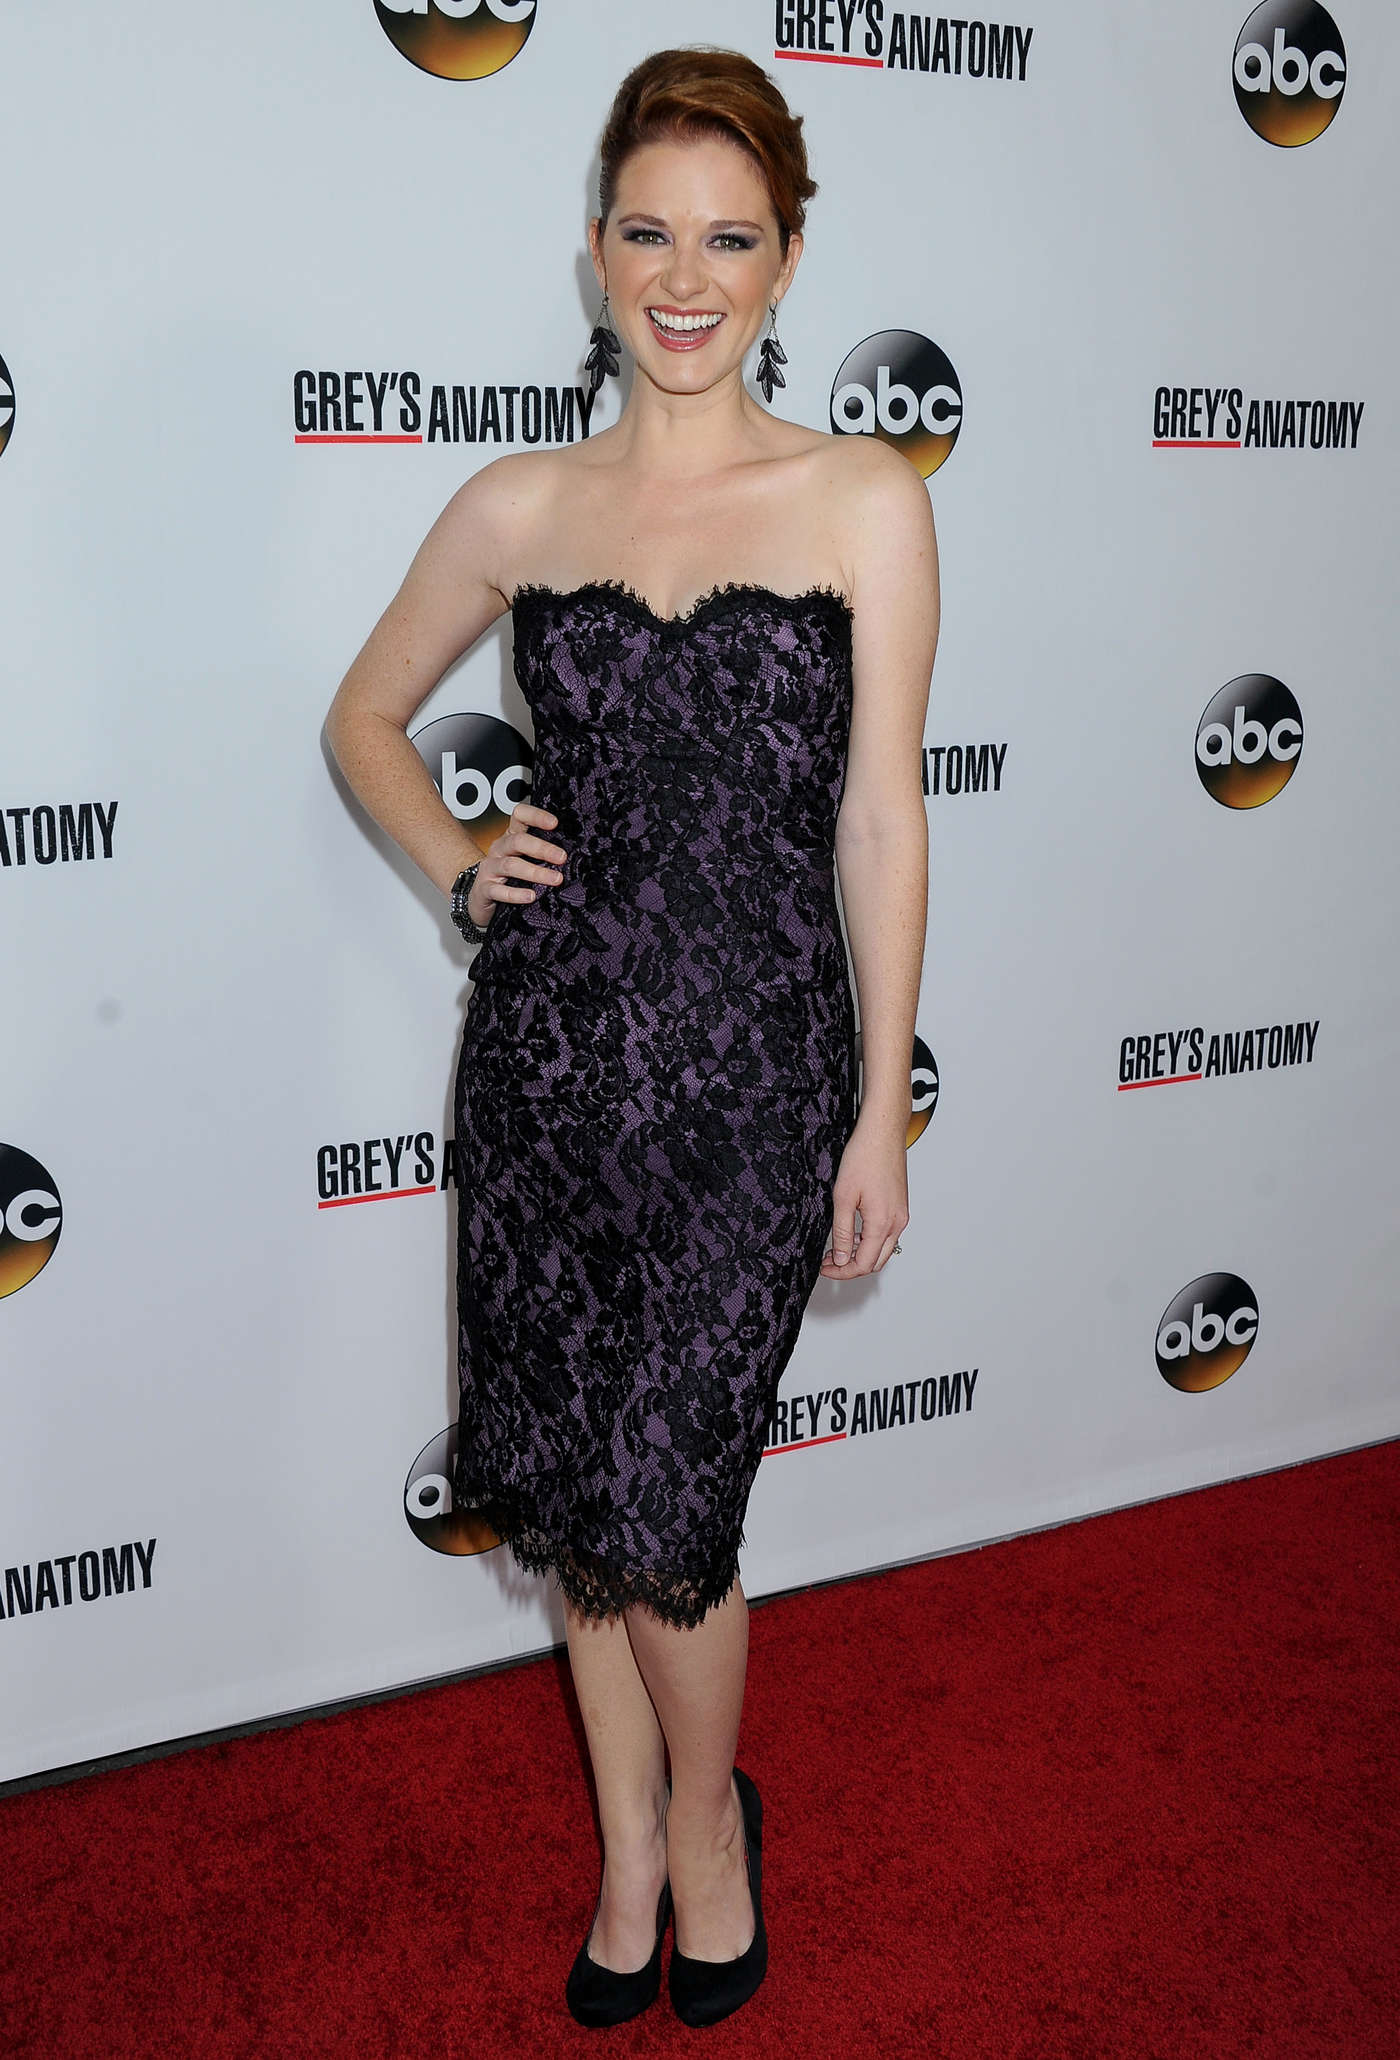 Sarah Drew Episode of Greys Anatomy Party in Los Angeles